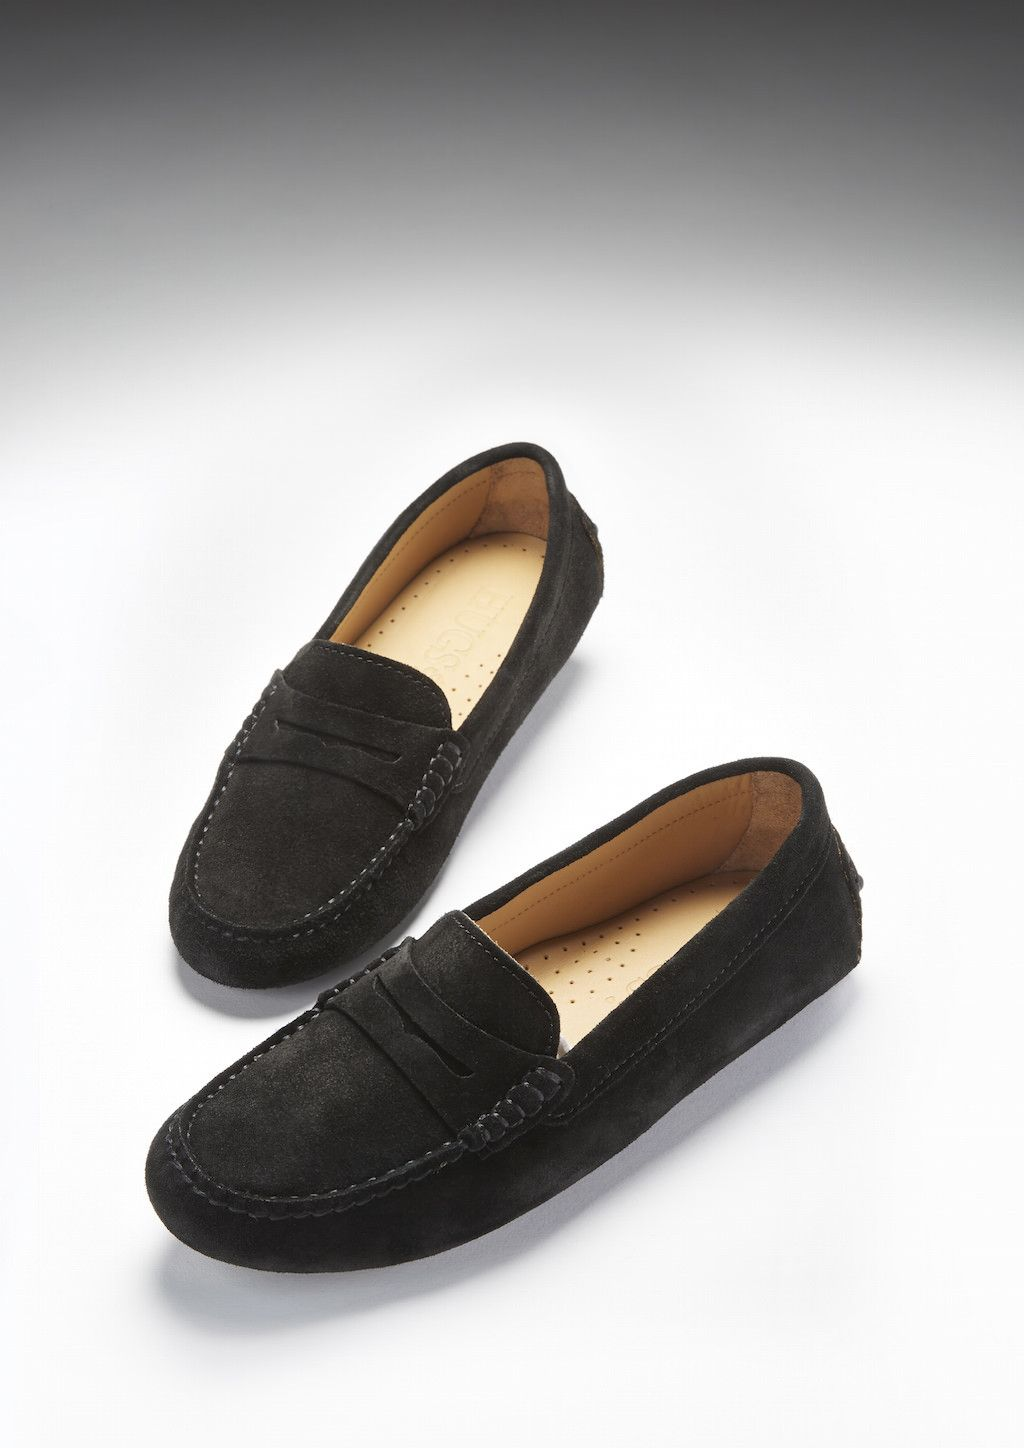 f5388a14298 Women s Penny Driving Loafers